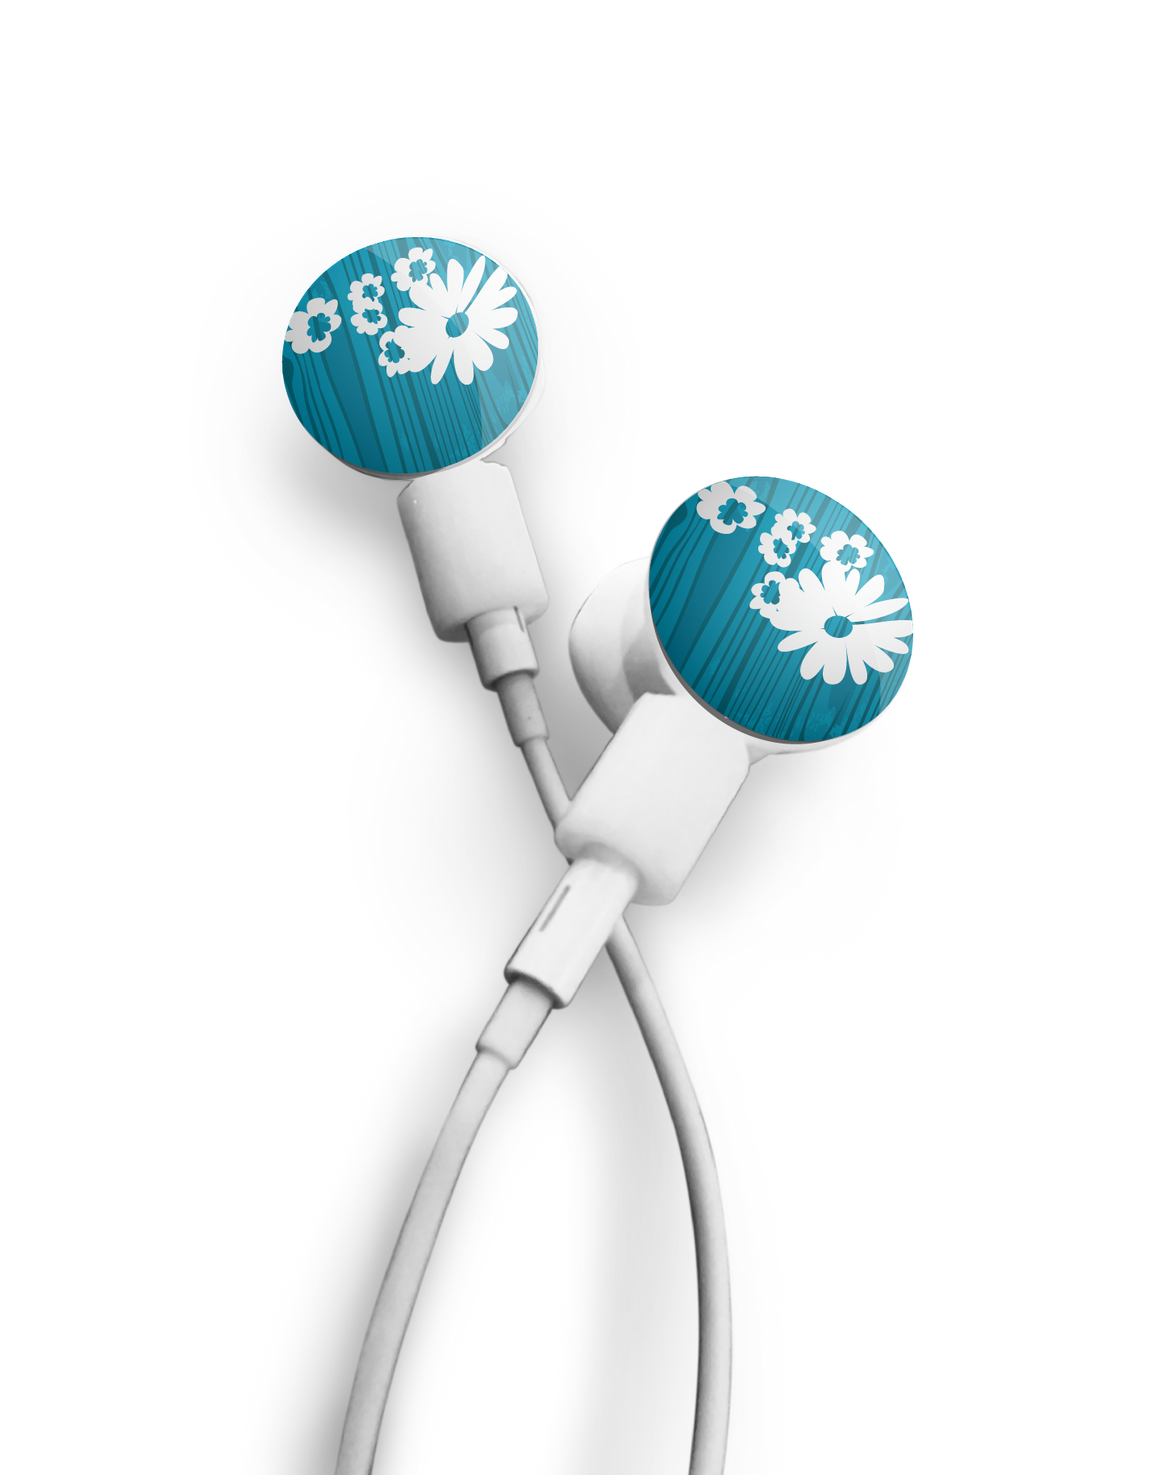 Earbuds + Daisy on Blue dekaSlides